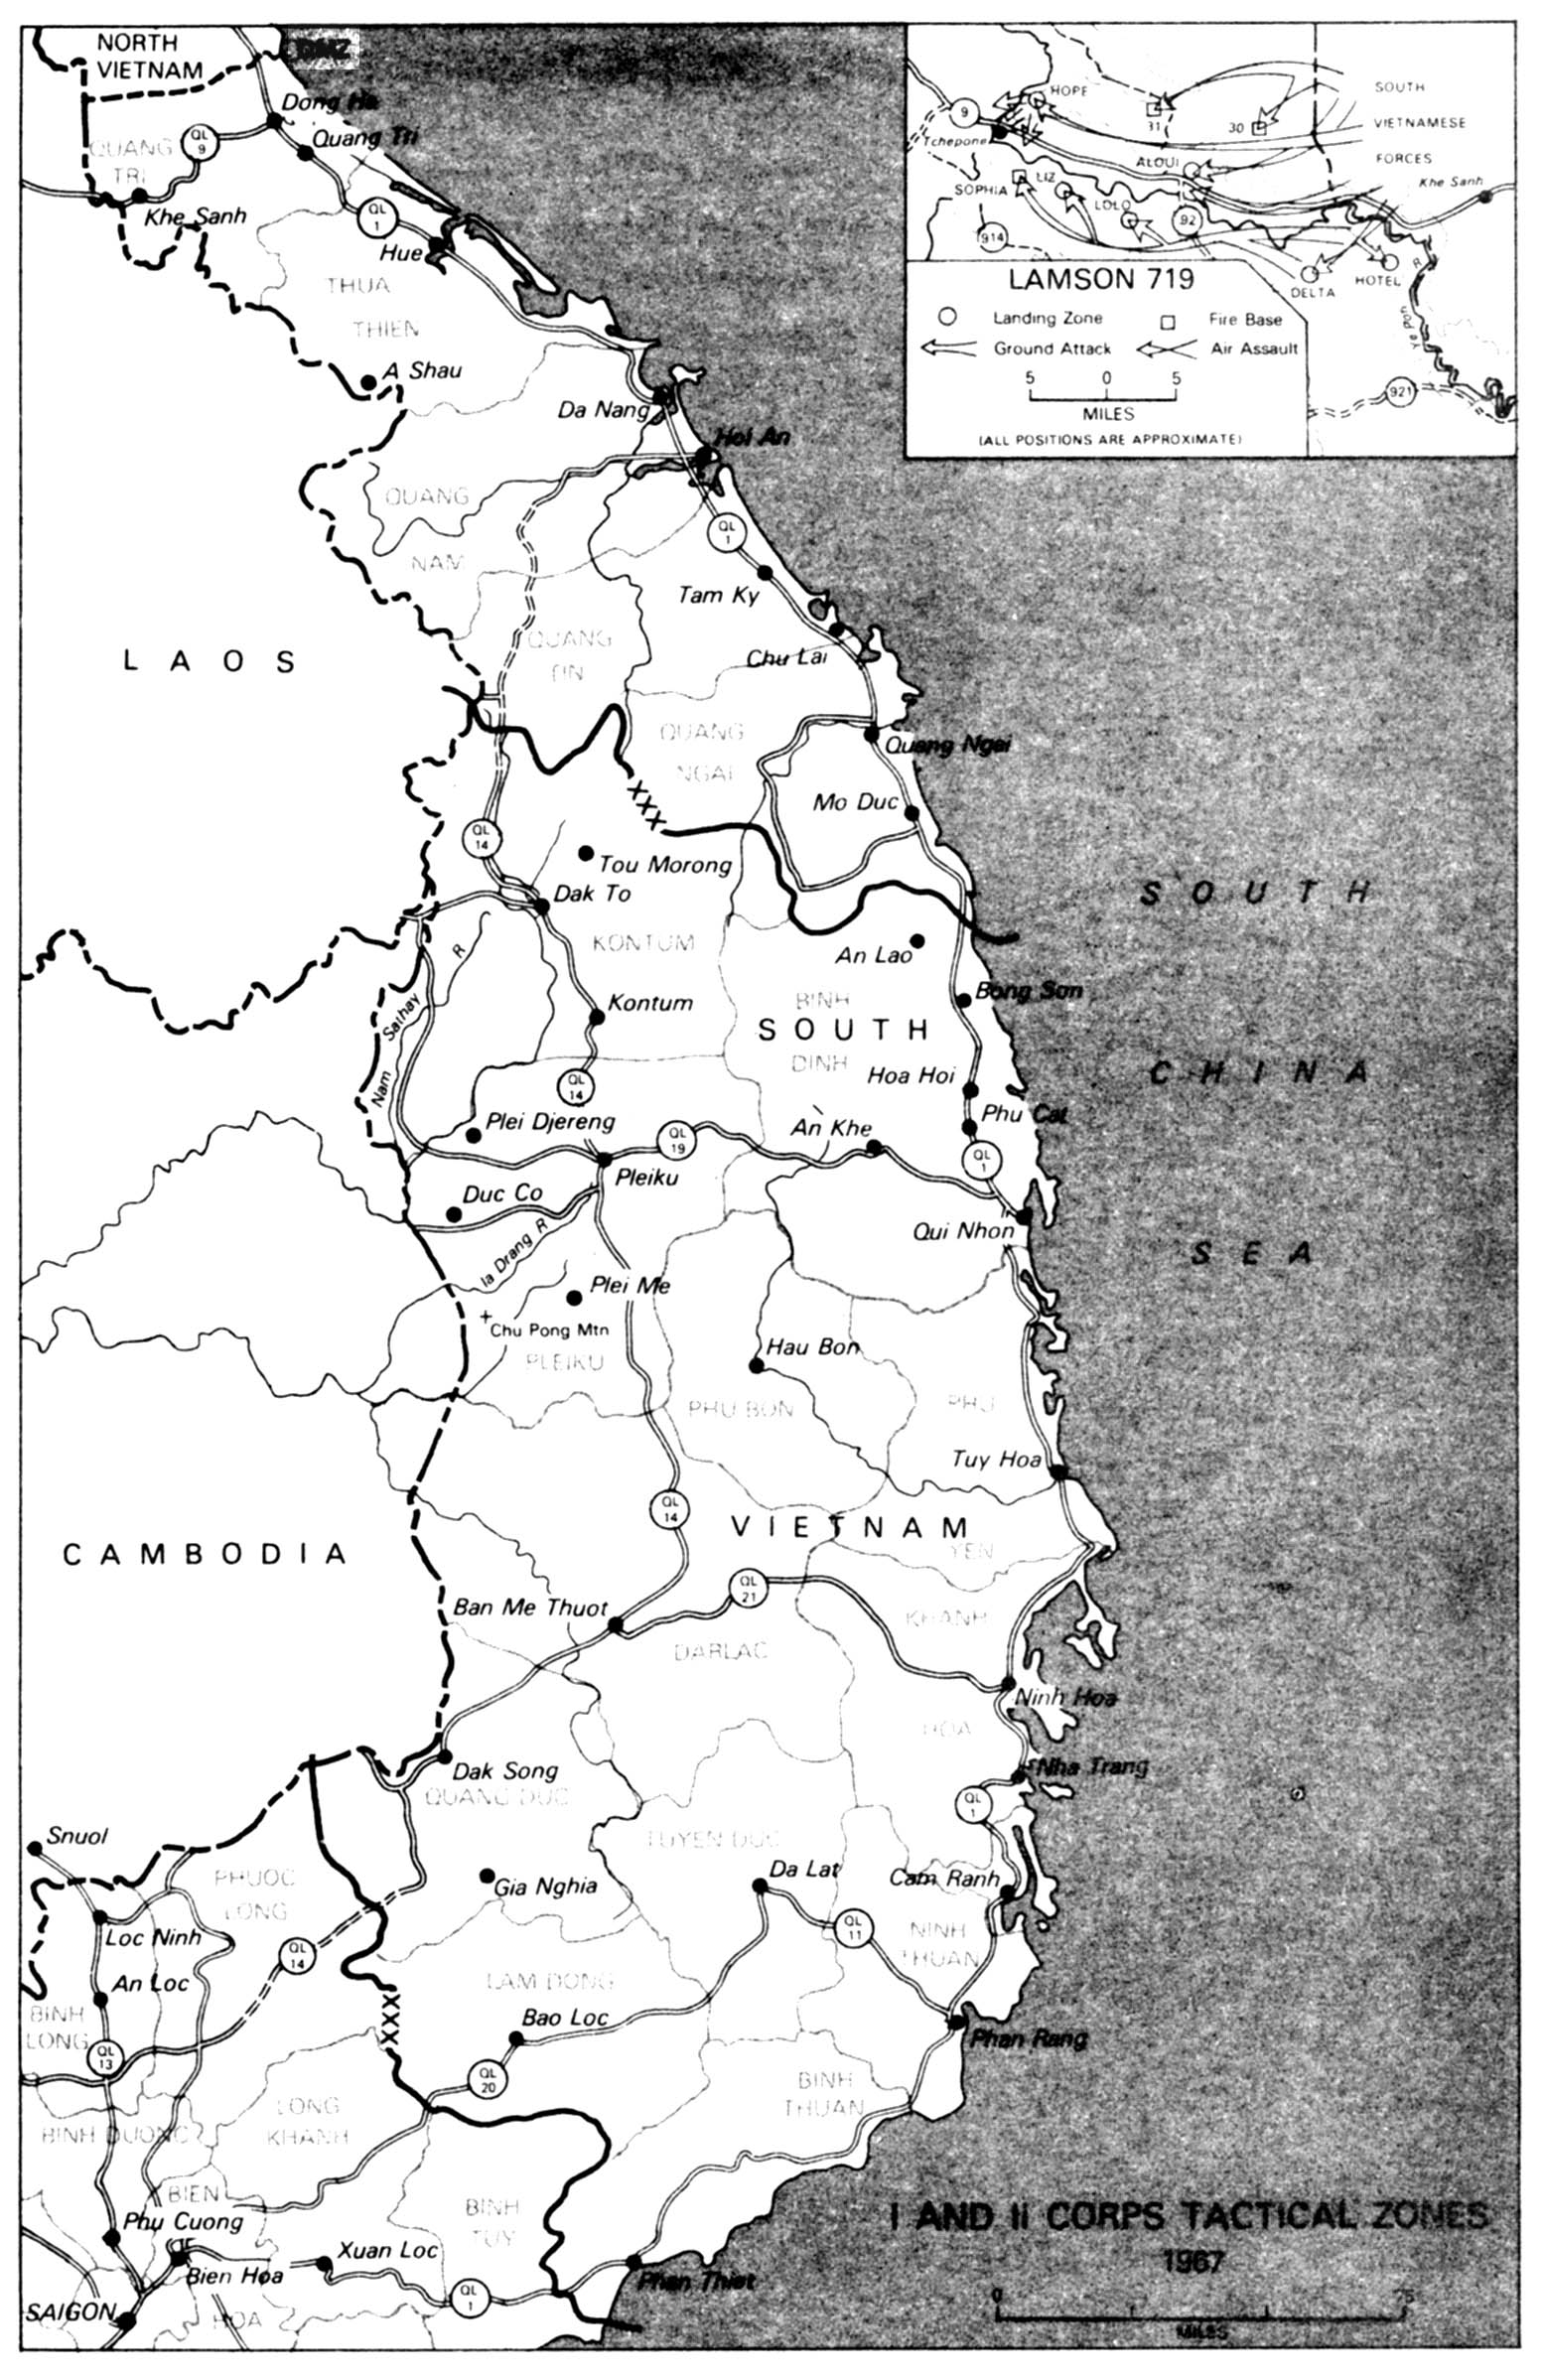 Map of the 1 and 2 Corps Tactical Zones, Southeast Asia 1967